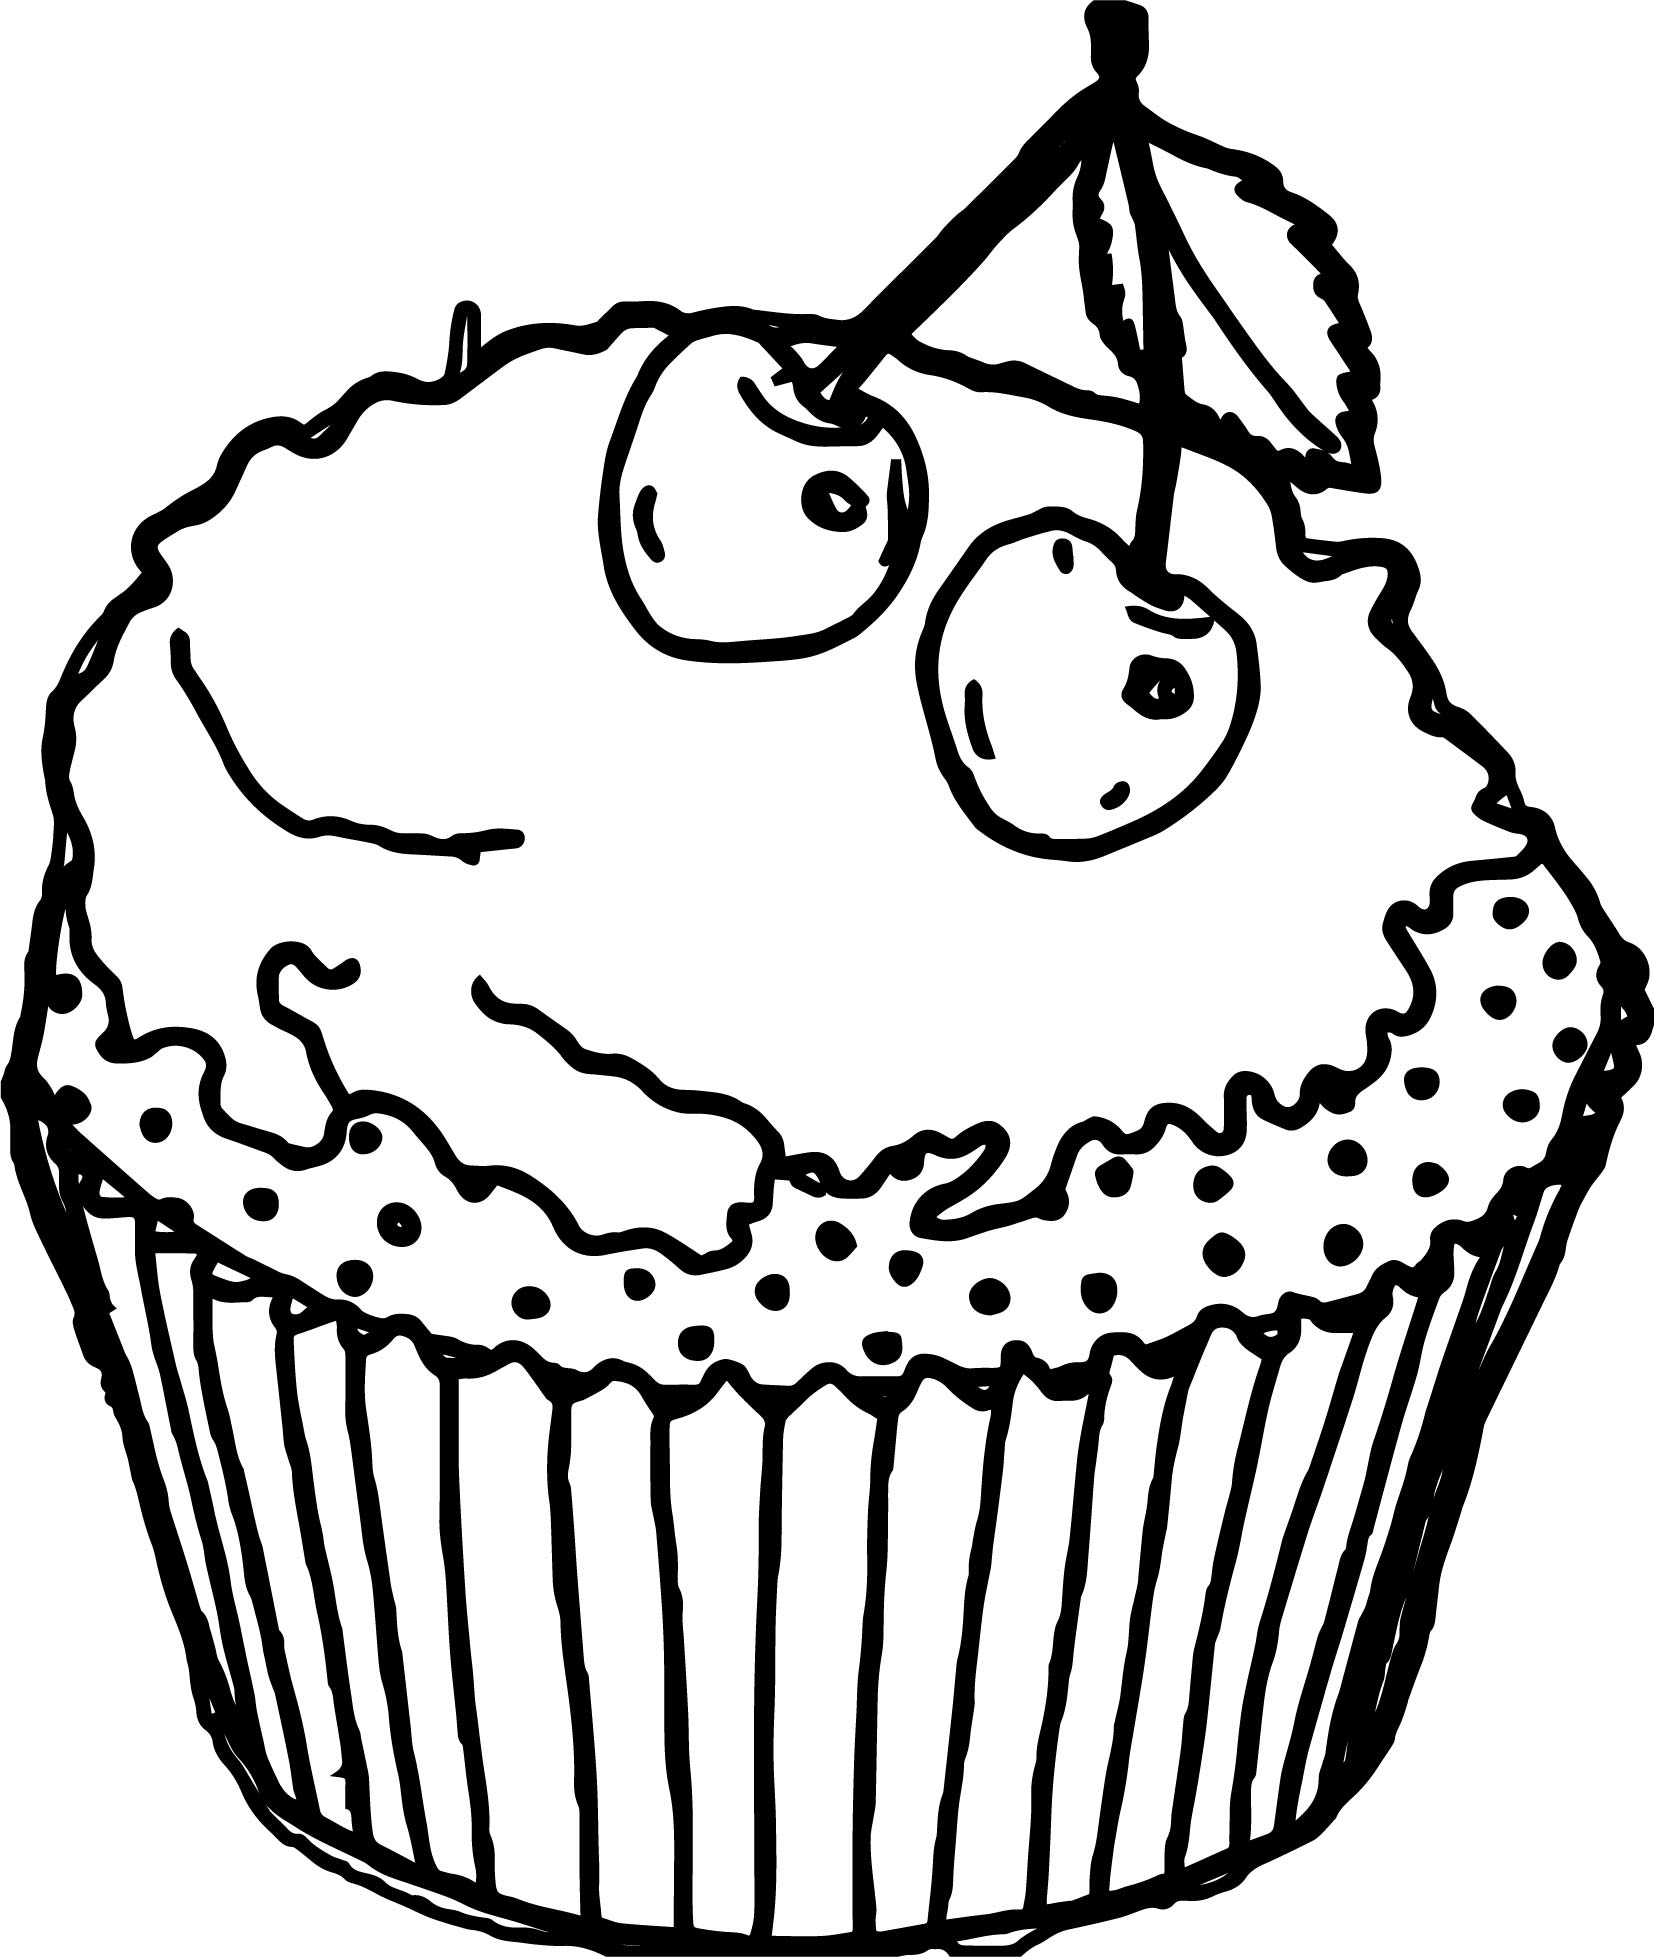 cartoon cupcake coloring pages cupcake drawing outline at getdrawings free download cartoon coloring cupcake pages